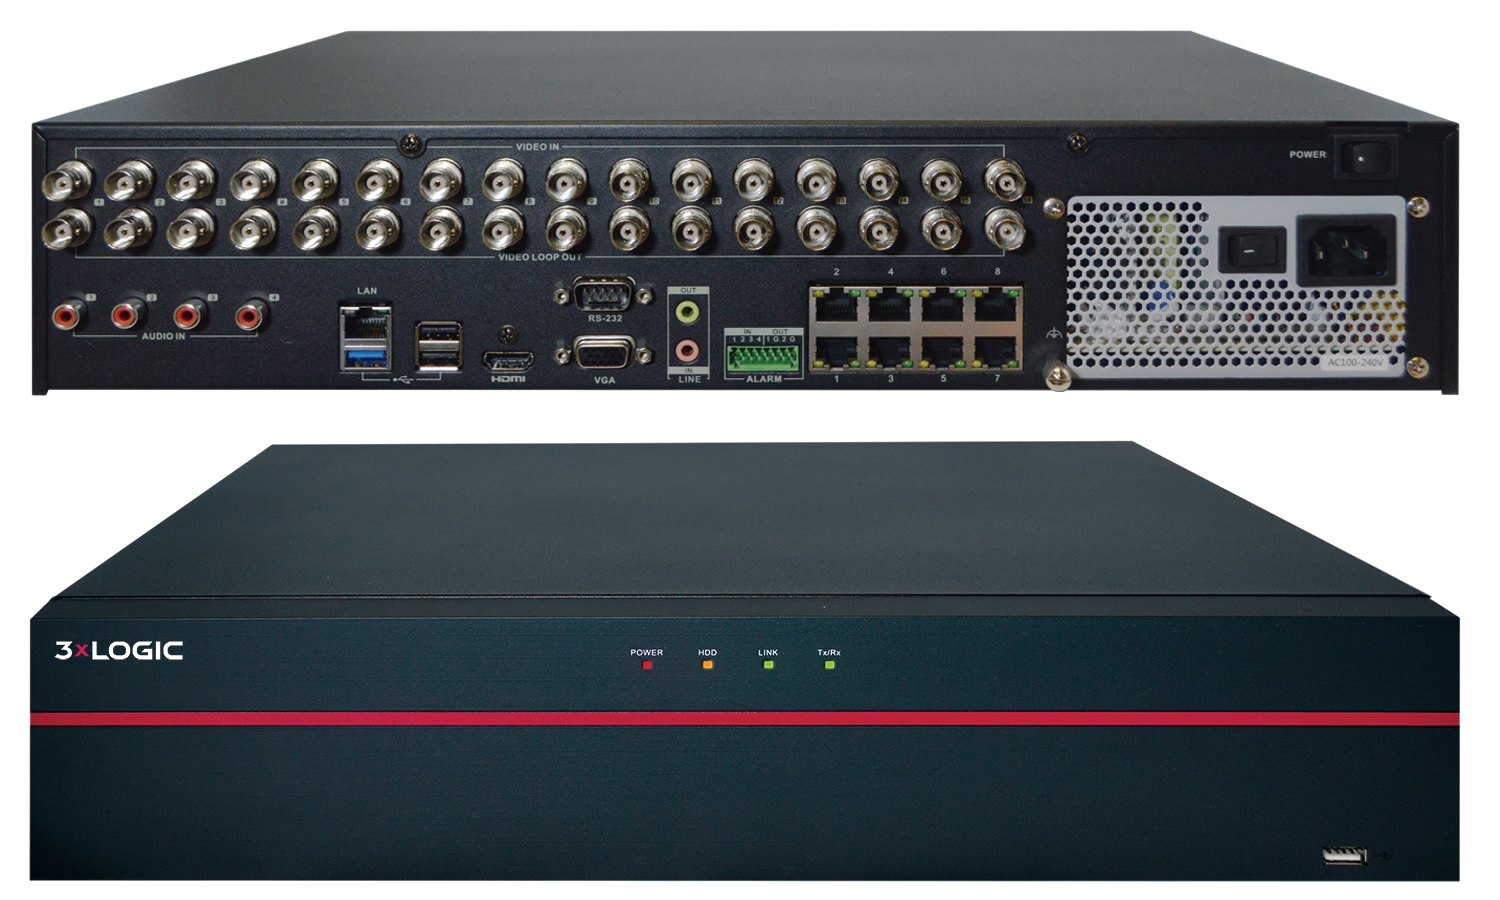 3xLOGIC introduces VIGIL V250 Hybrid NVR